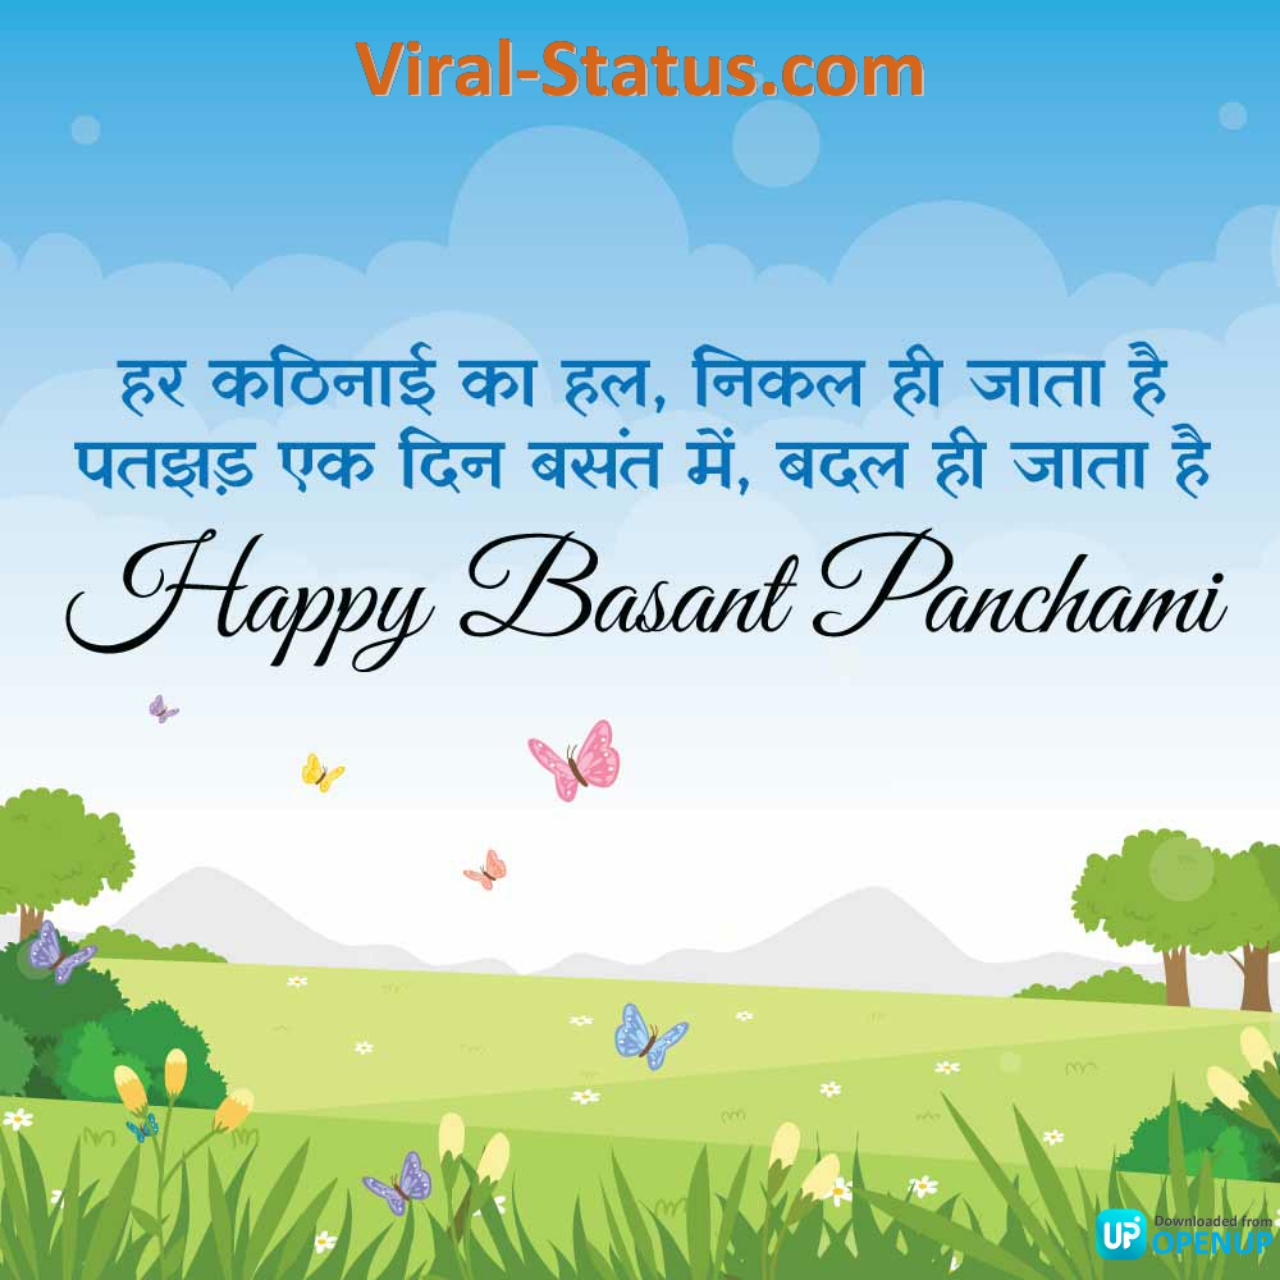 basant panchami quotes in hindi